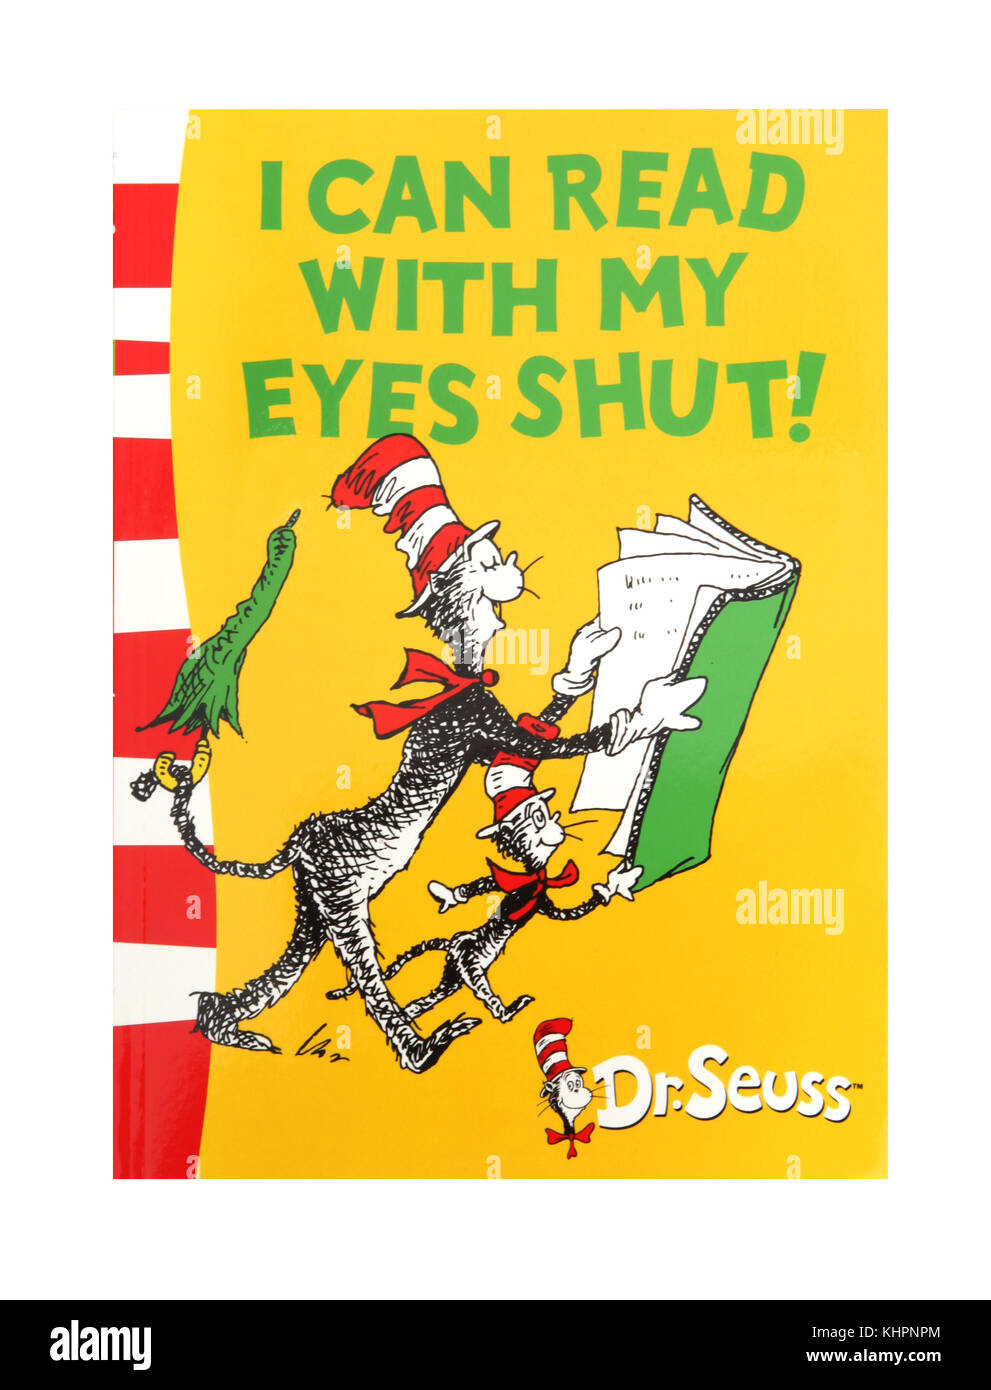 The book, I can read with my eyes shut,  by Dr Seuss - Stock Image